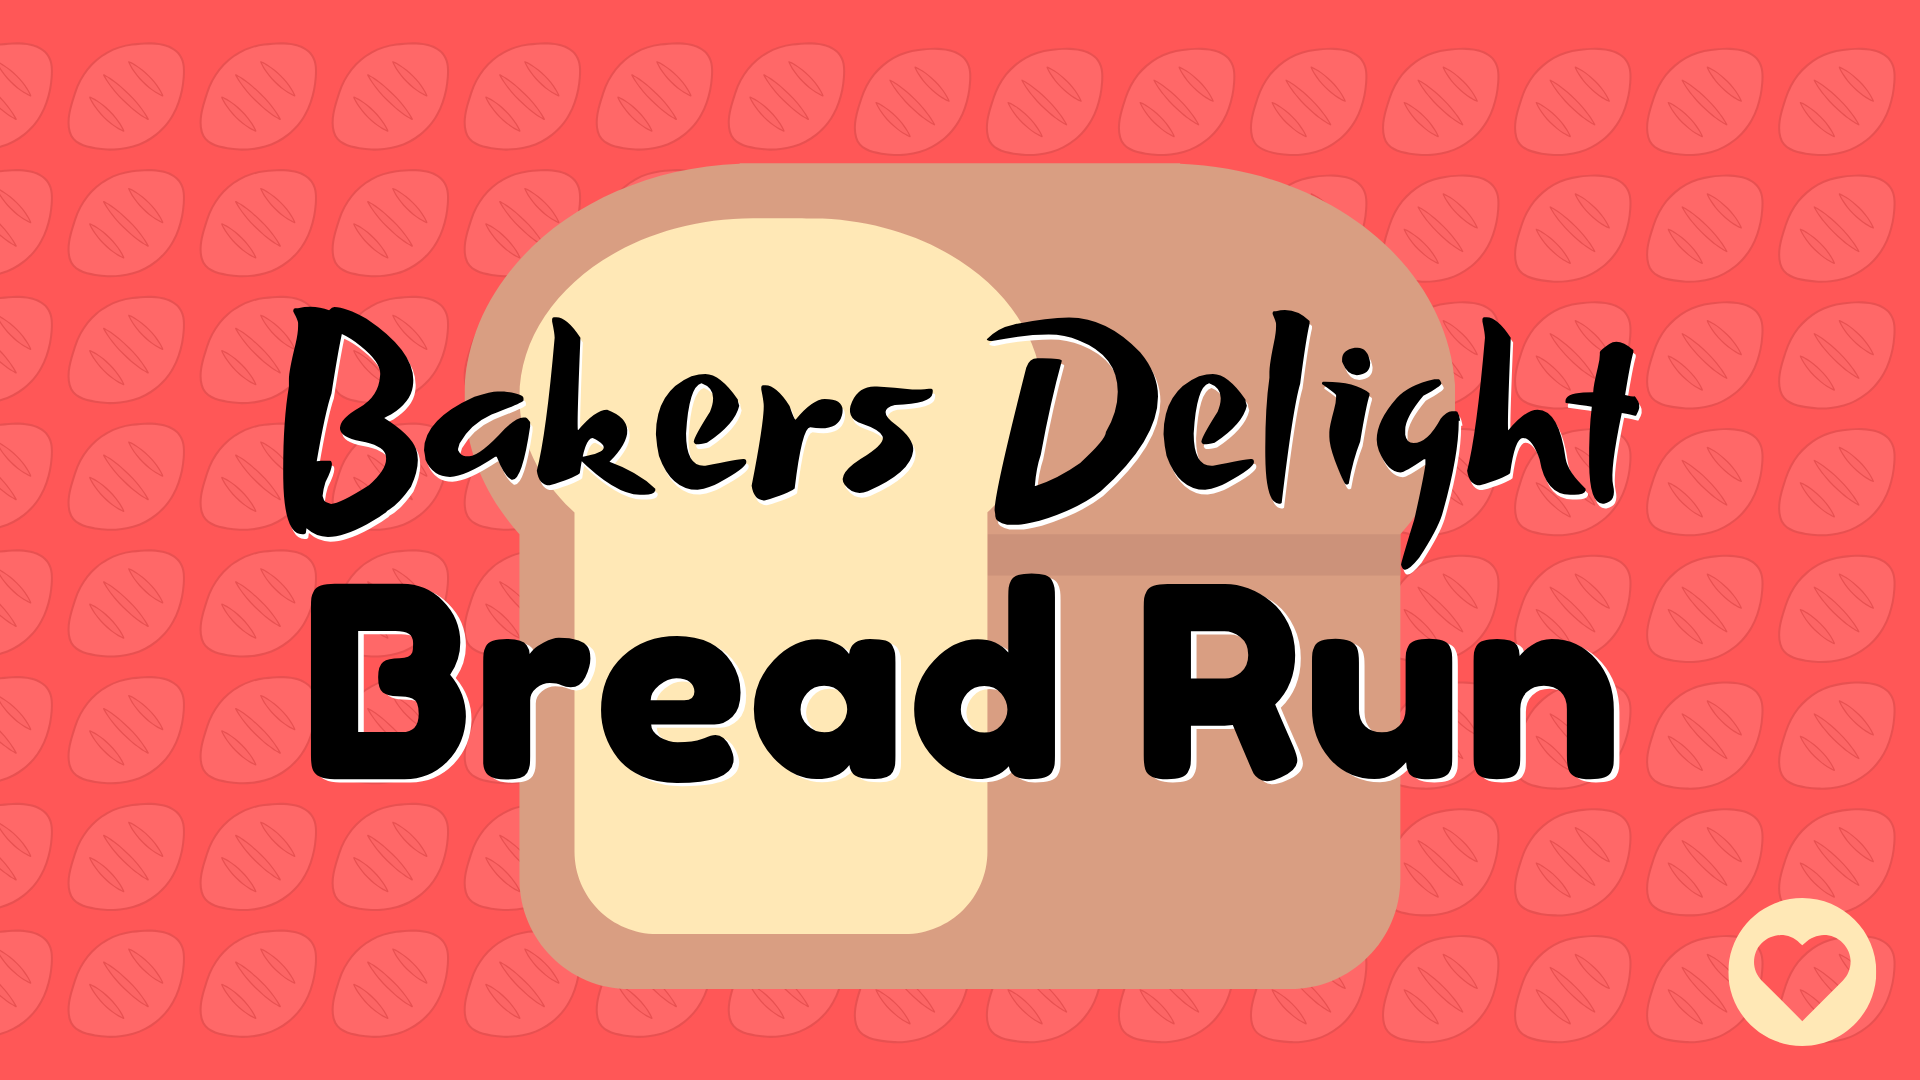 BAKER'S DELIGHT BREAD RUN